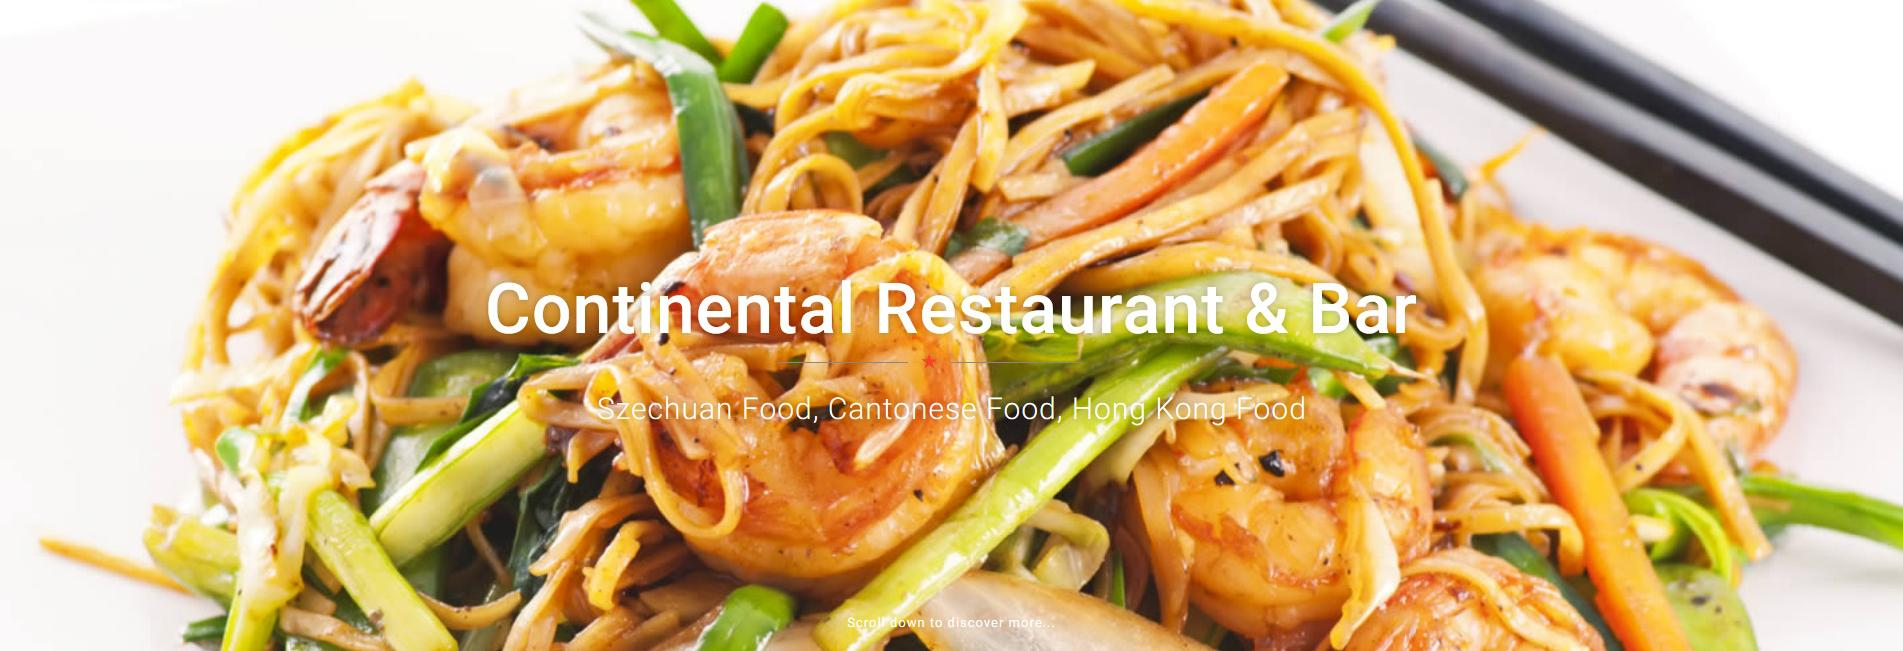 Welcome to Continental Restaurant & Bar